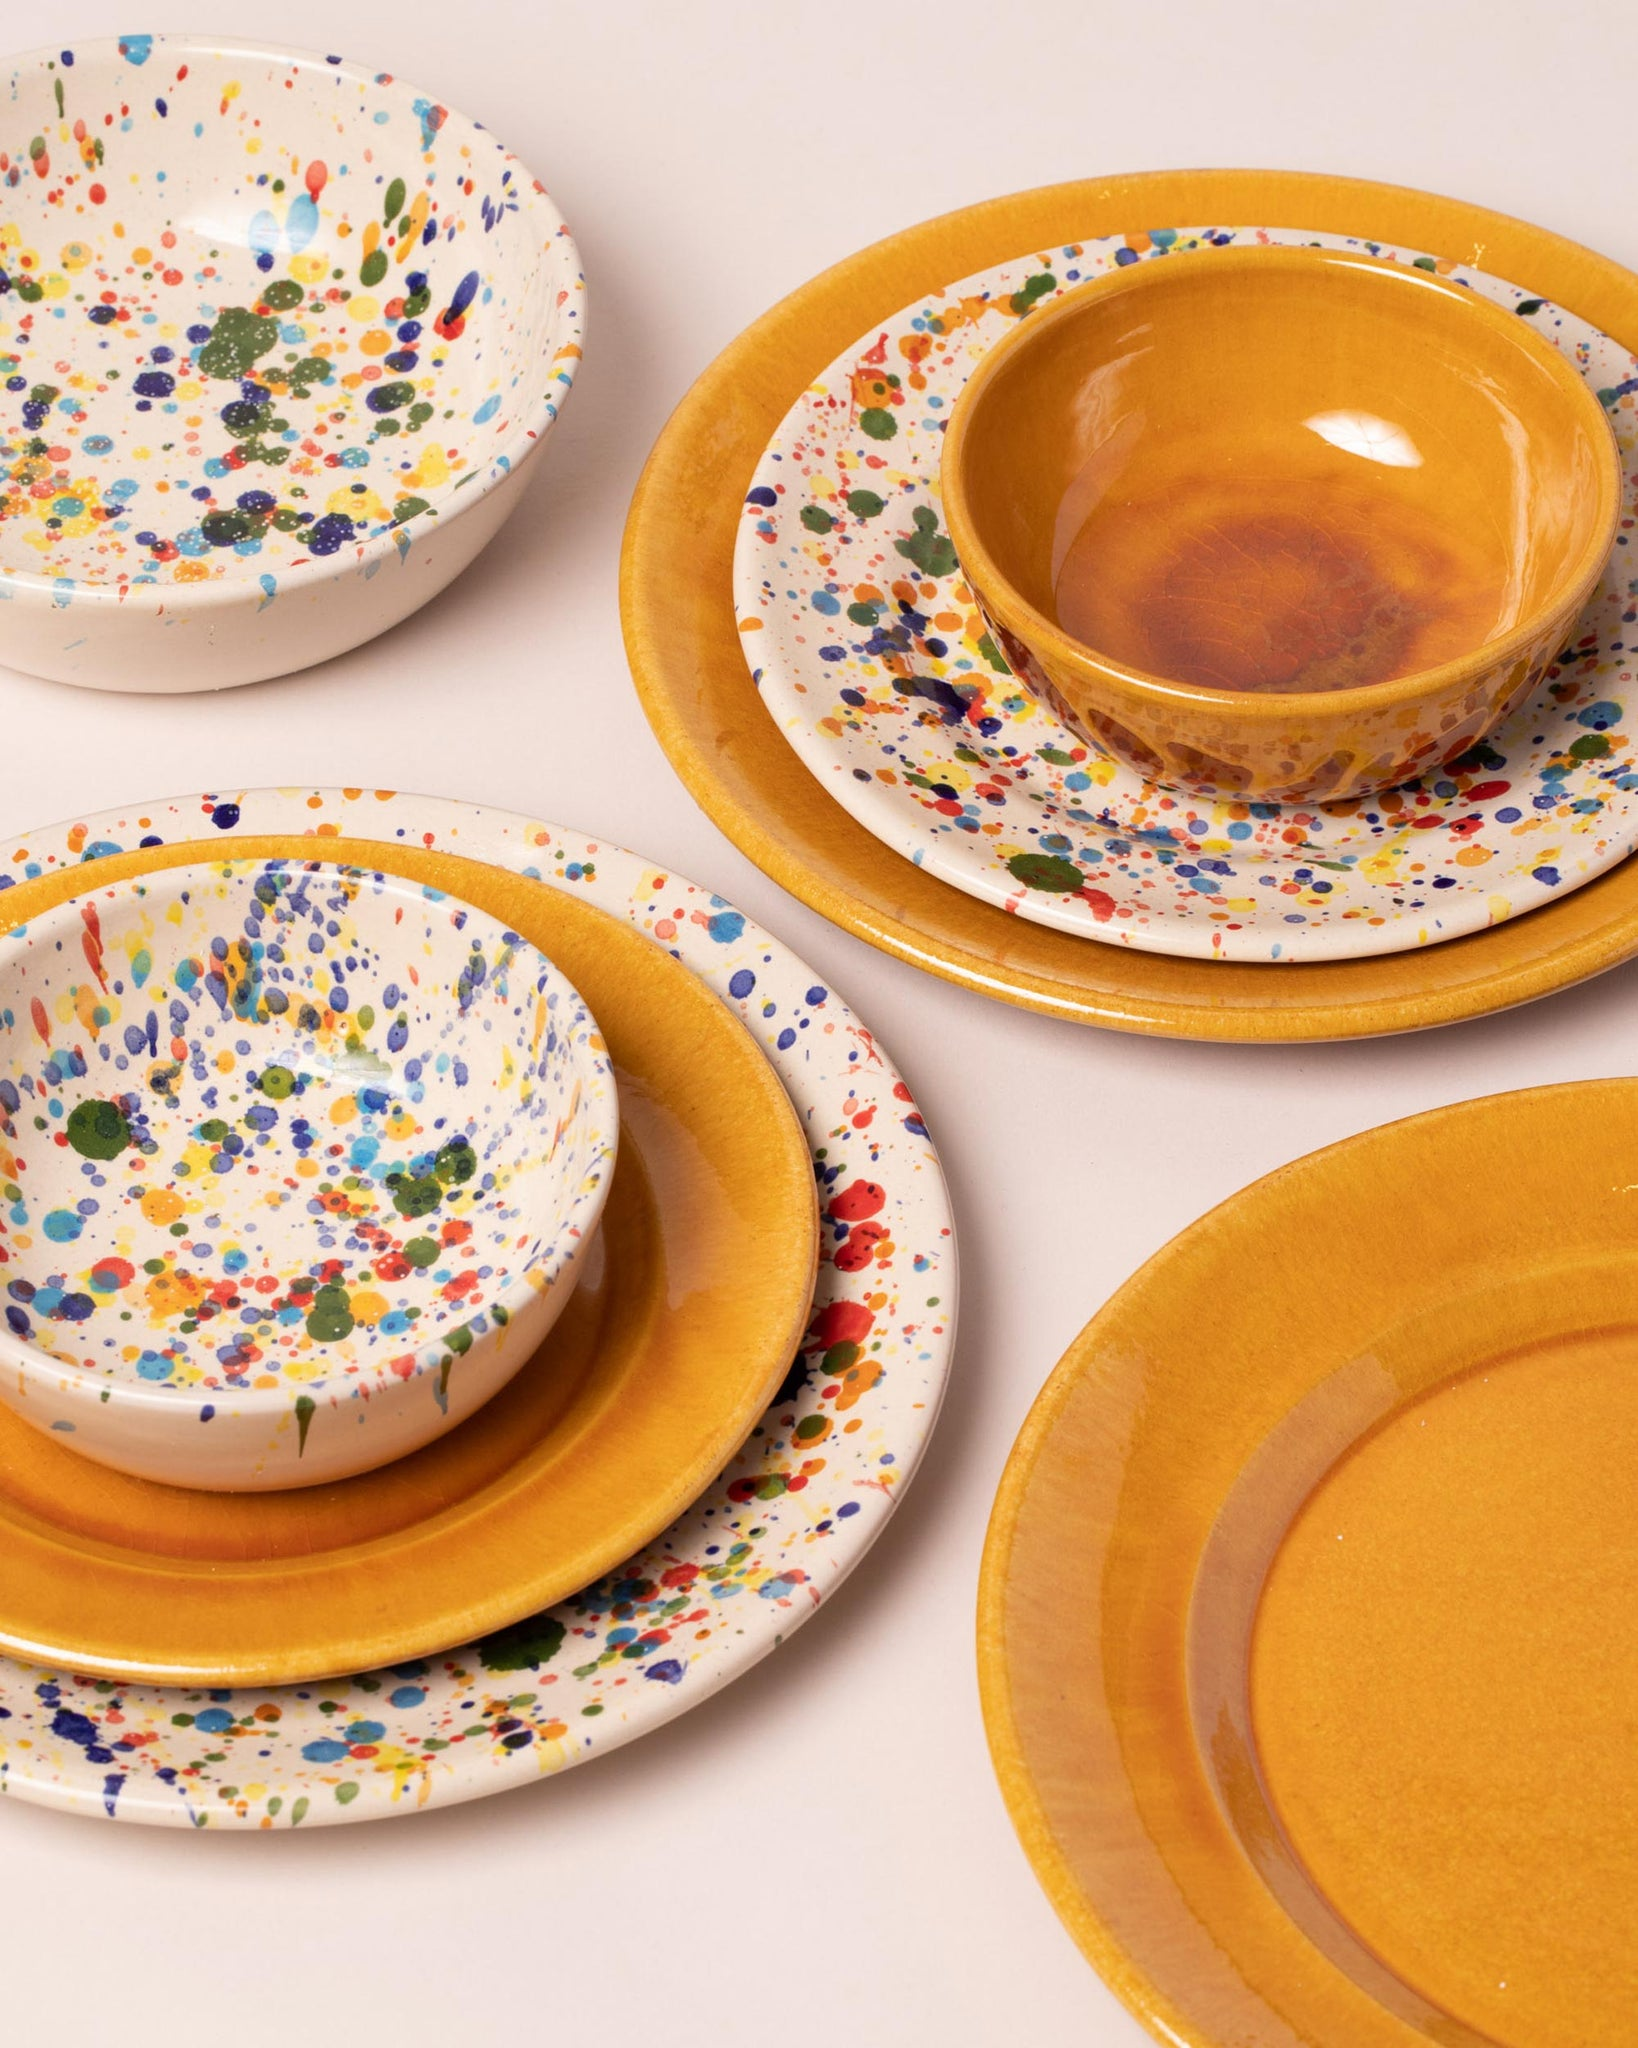 Group of La Ceramica dishes and bowls